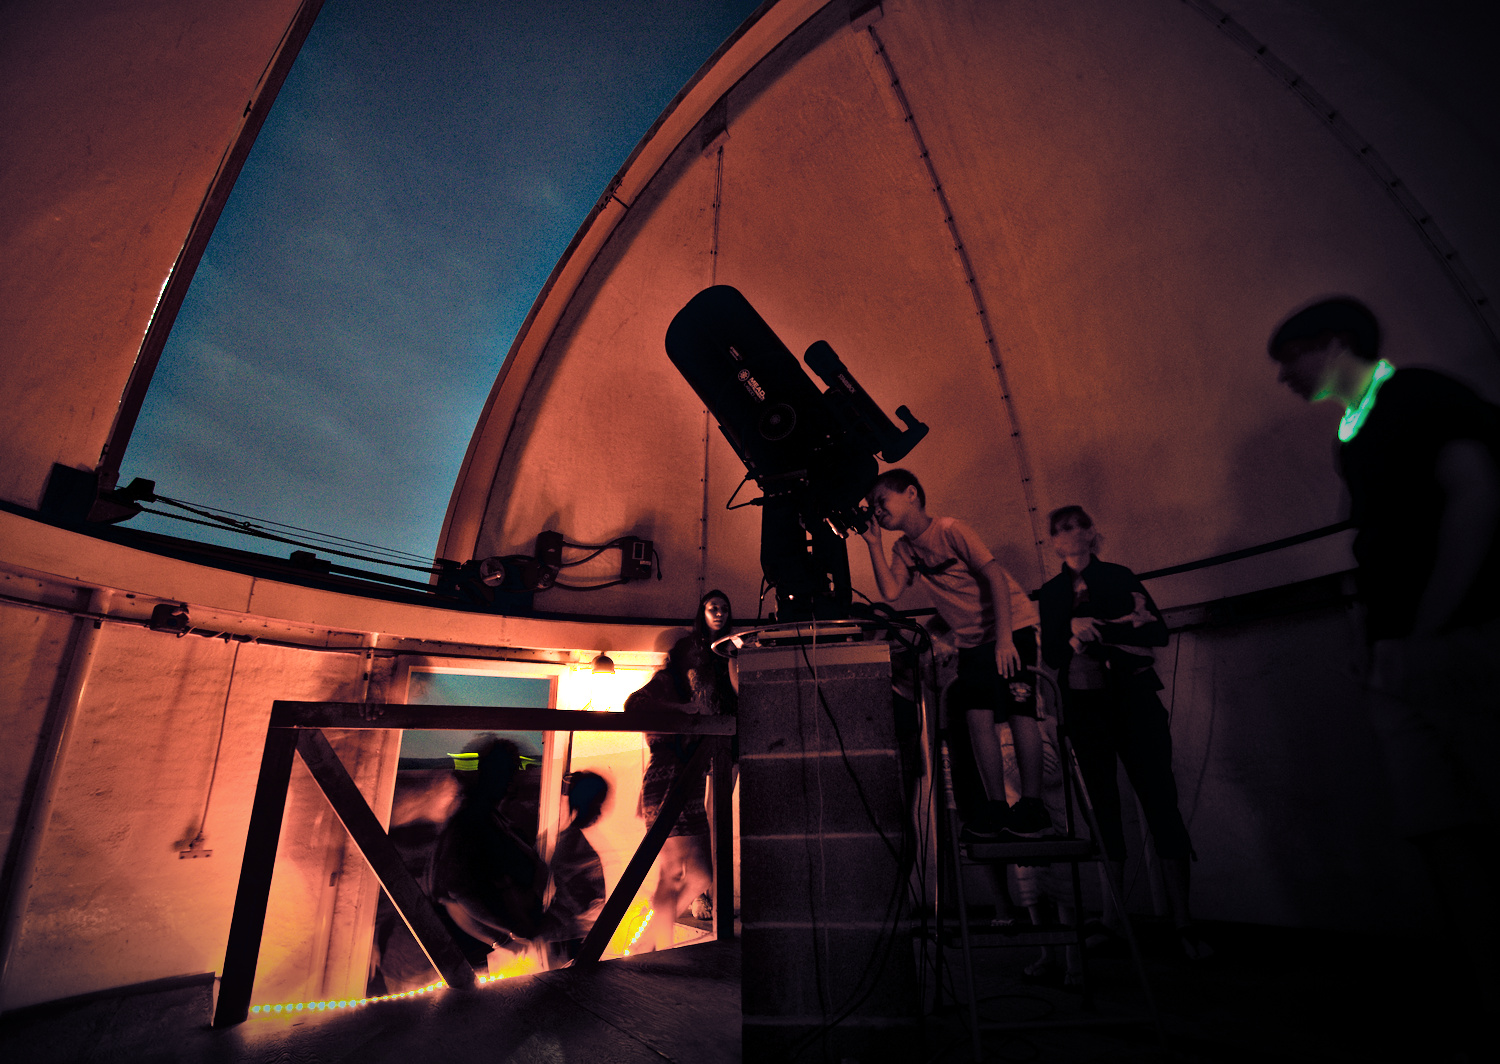 Rooftop observing - Visitors looking at the double star Albireo through one of the telescopes on top of Davey Lab.